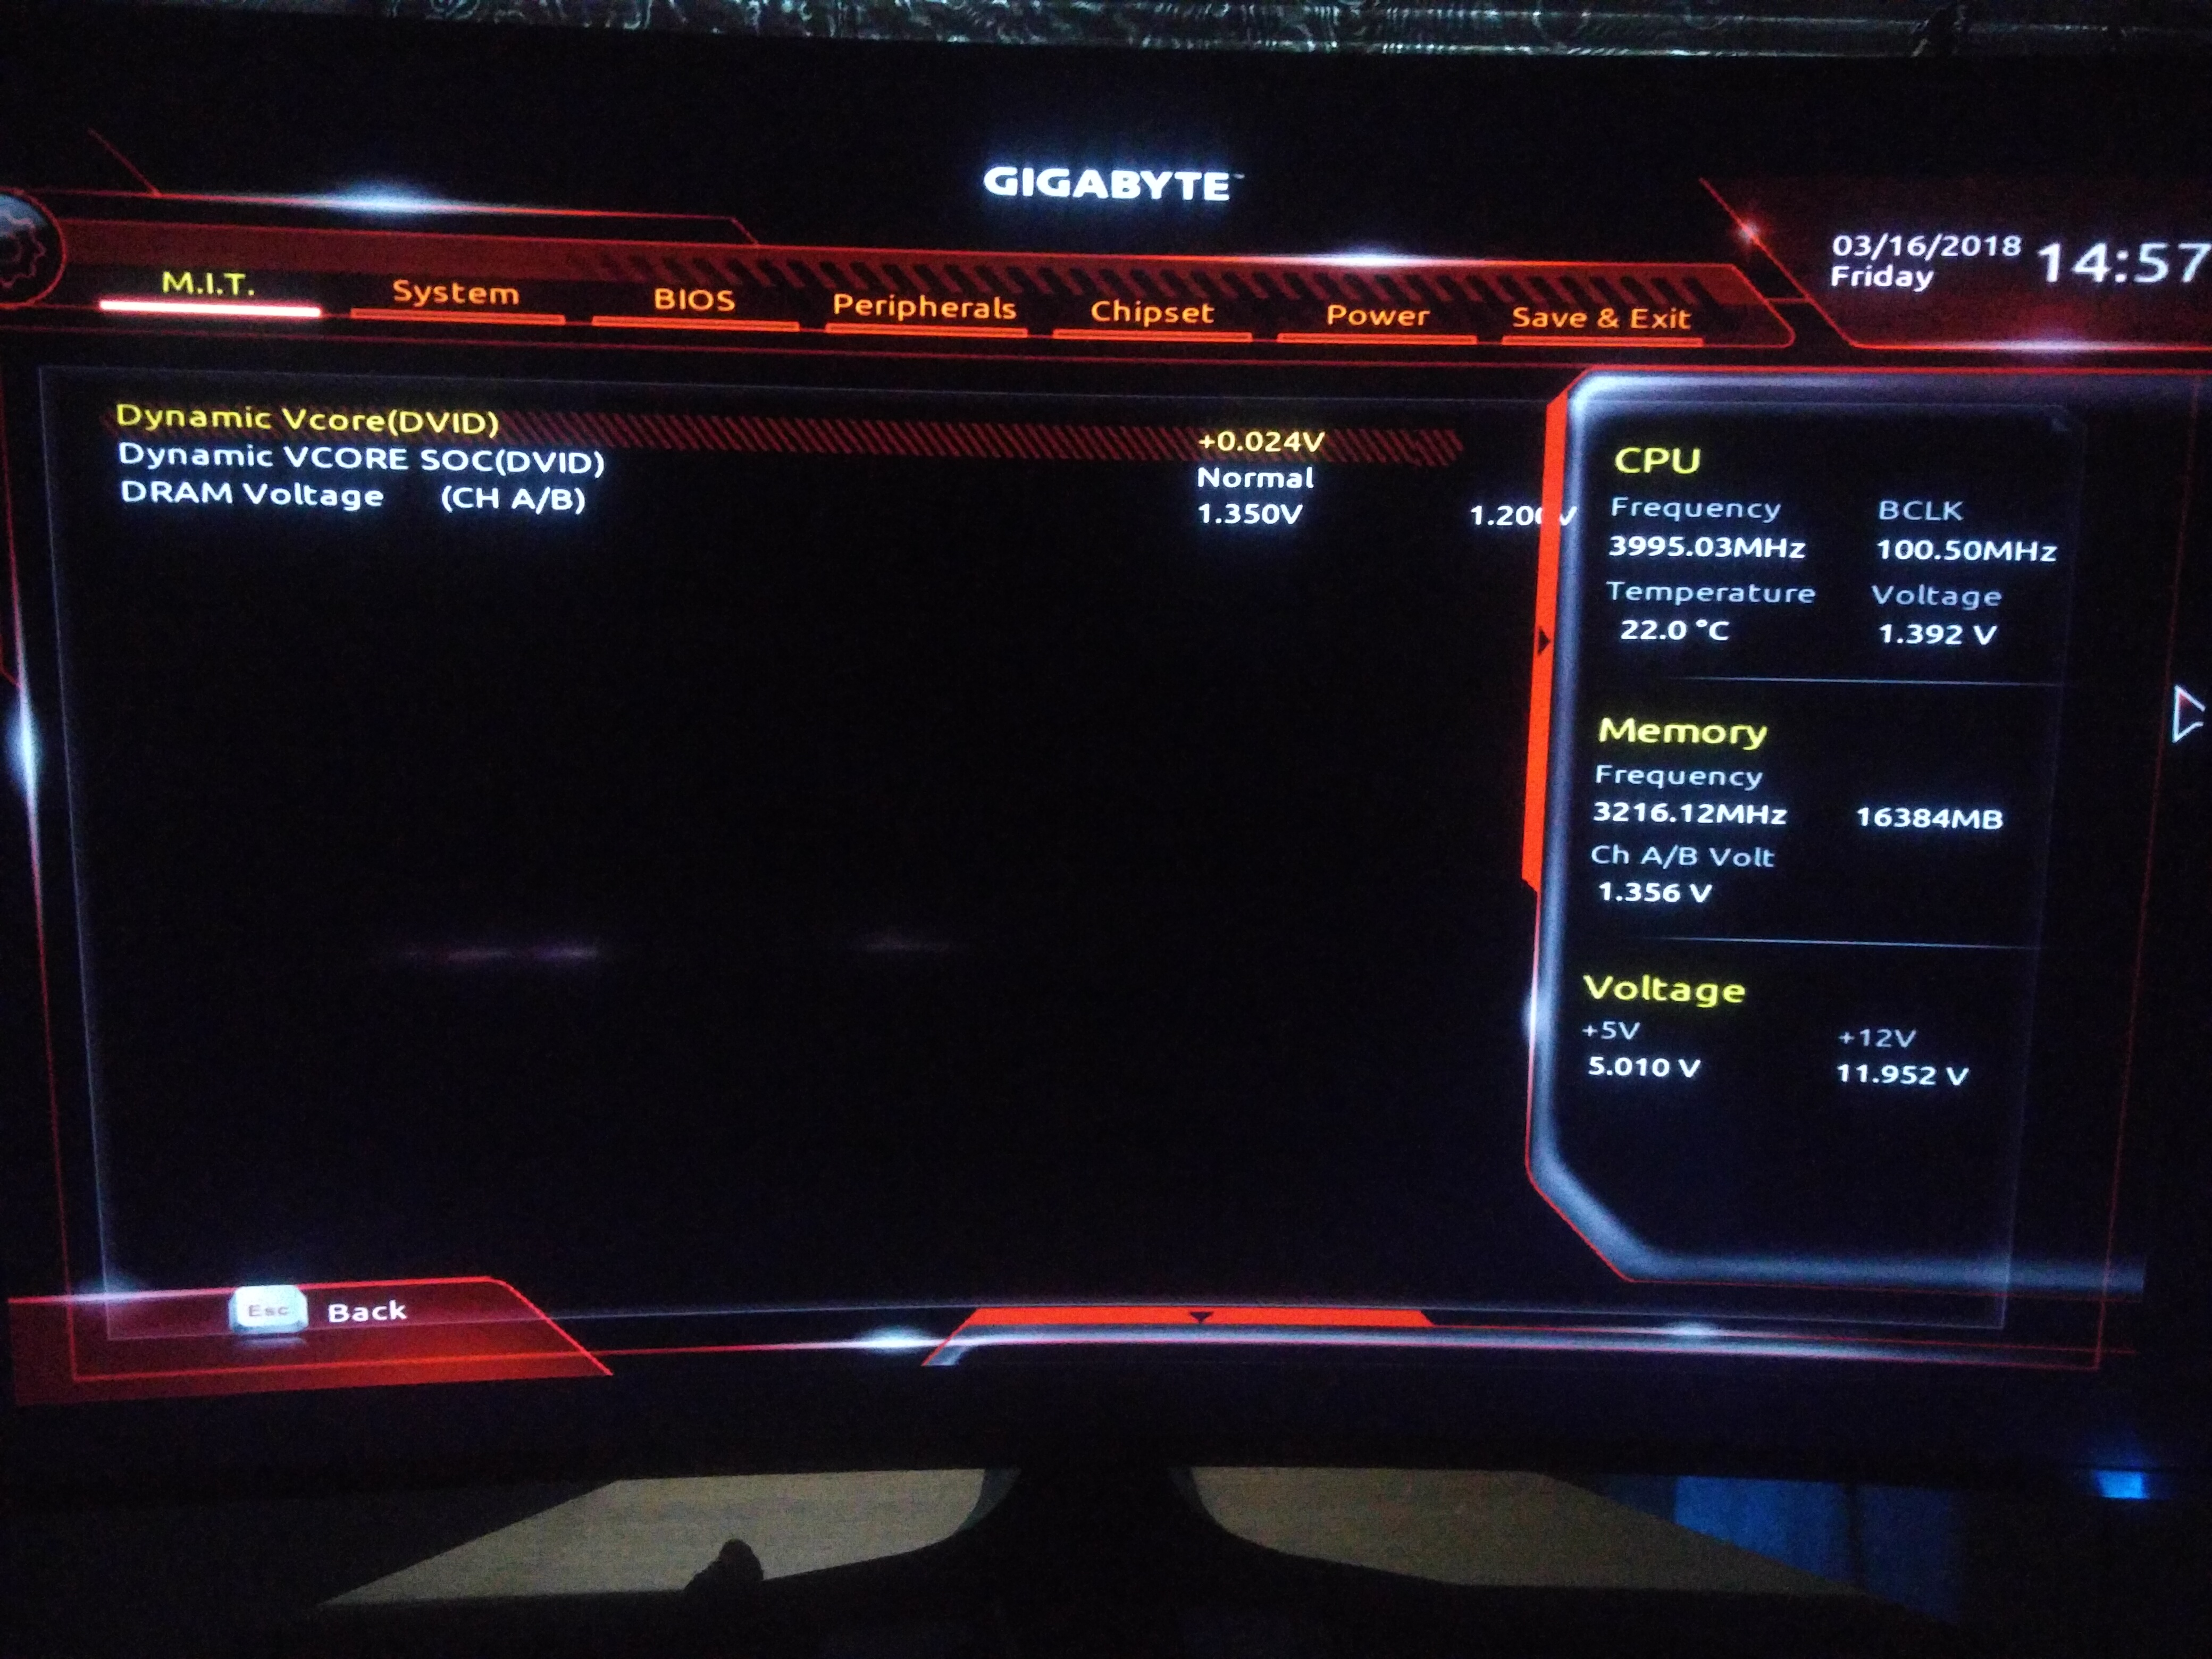 4K Smart TV unable to do 60Hz at 1440p??? - Displays - Linus Tech Tips